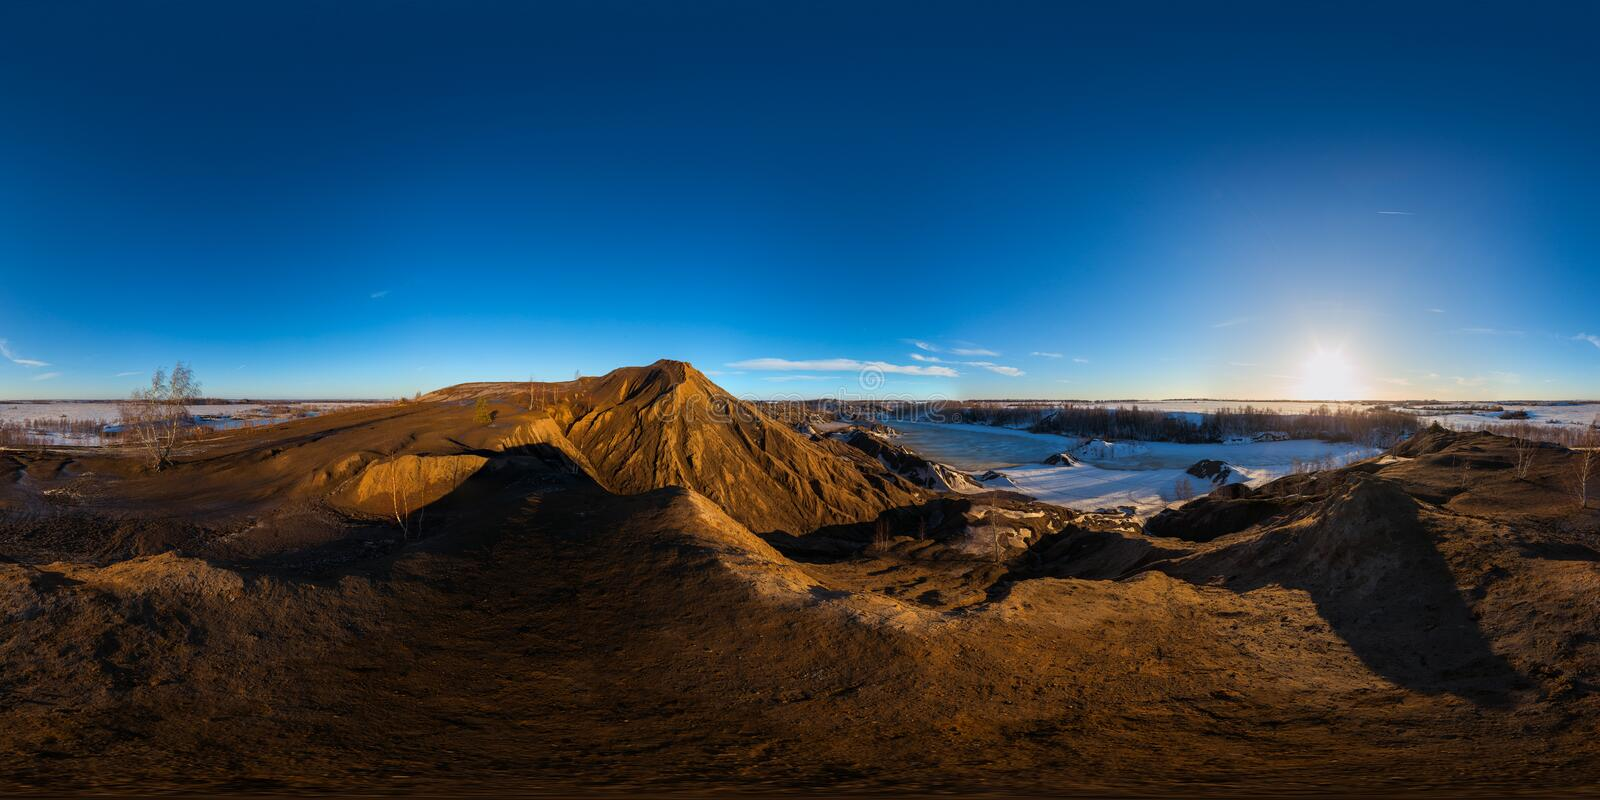 Clay hills quarry at sprig sunset spherical 360 degree panorama in equirectangular projection stock photos